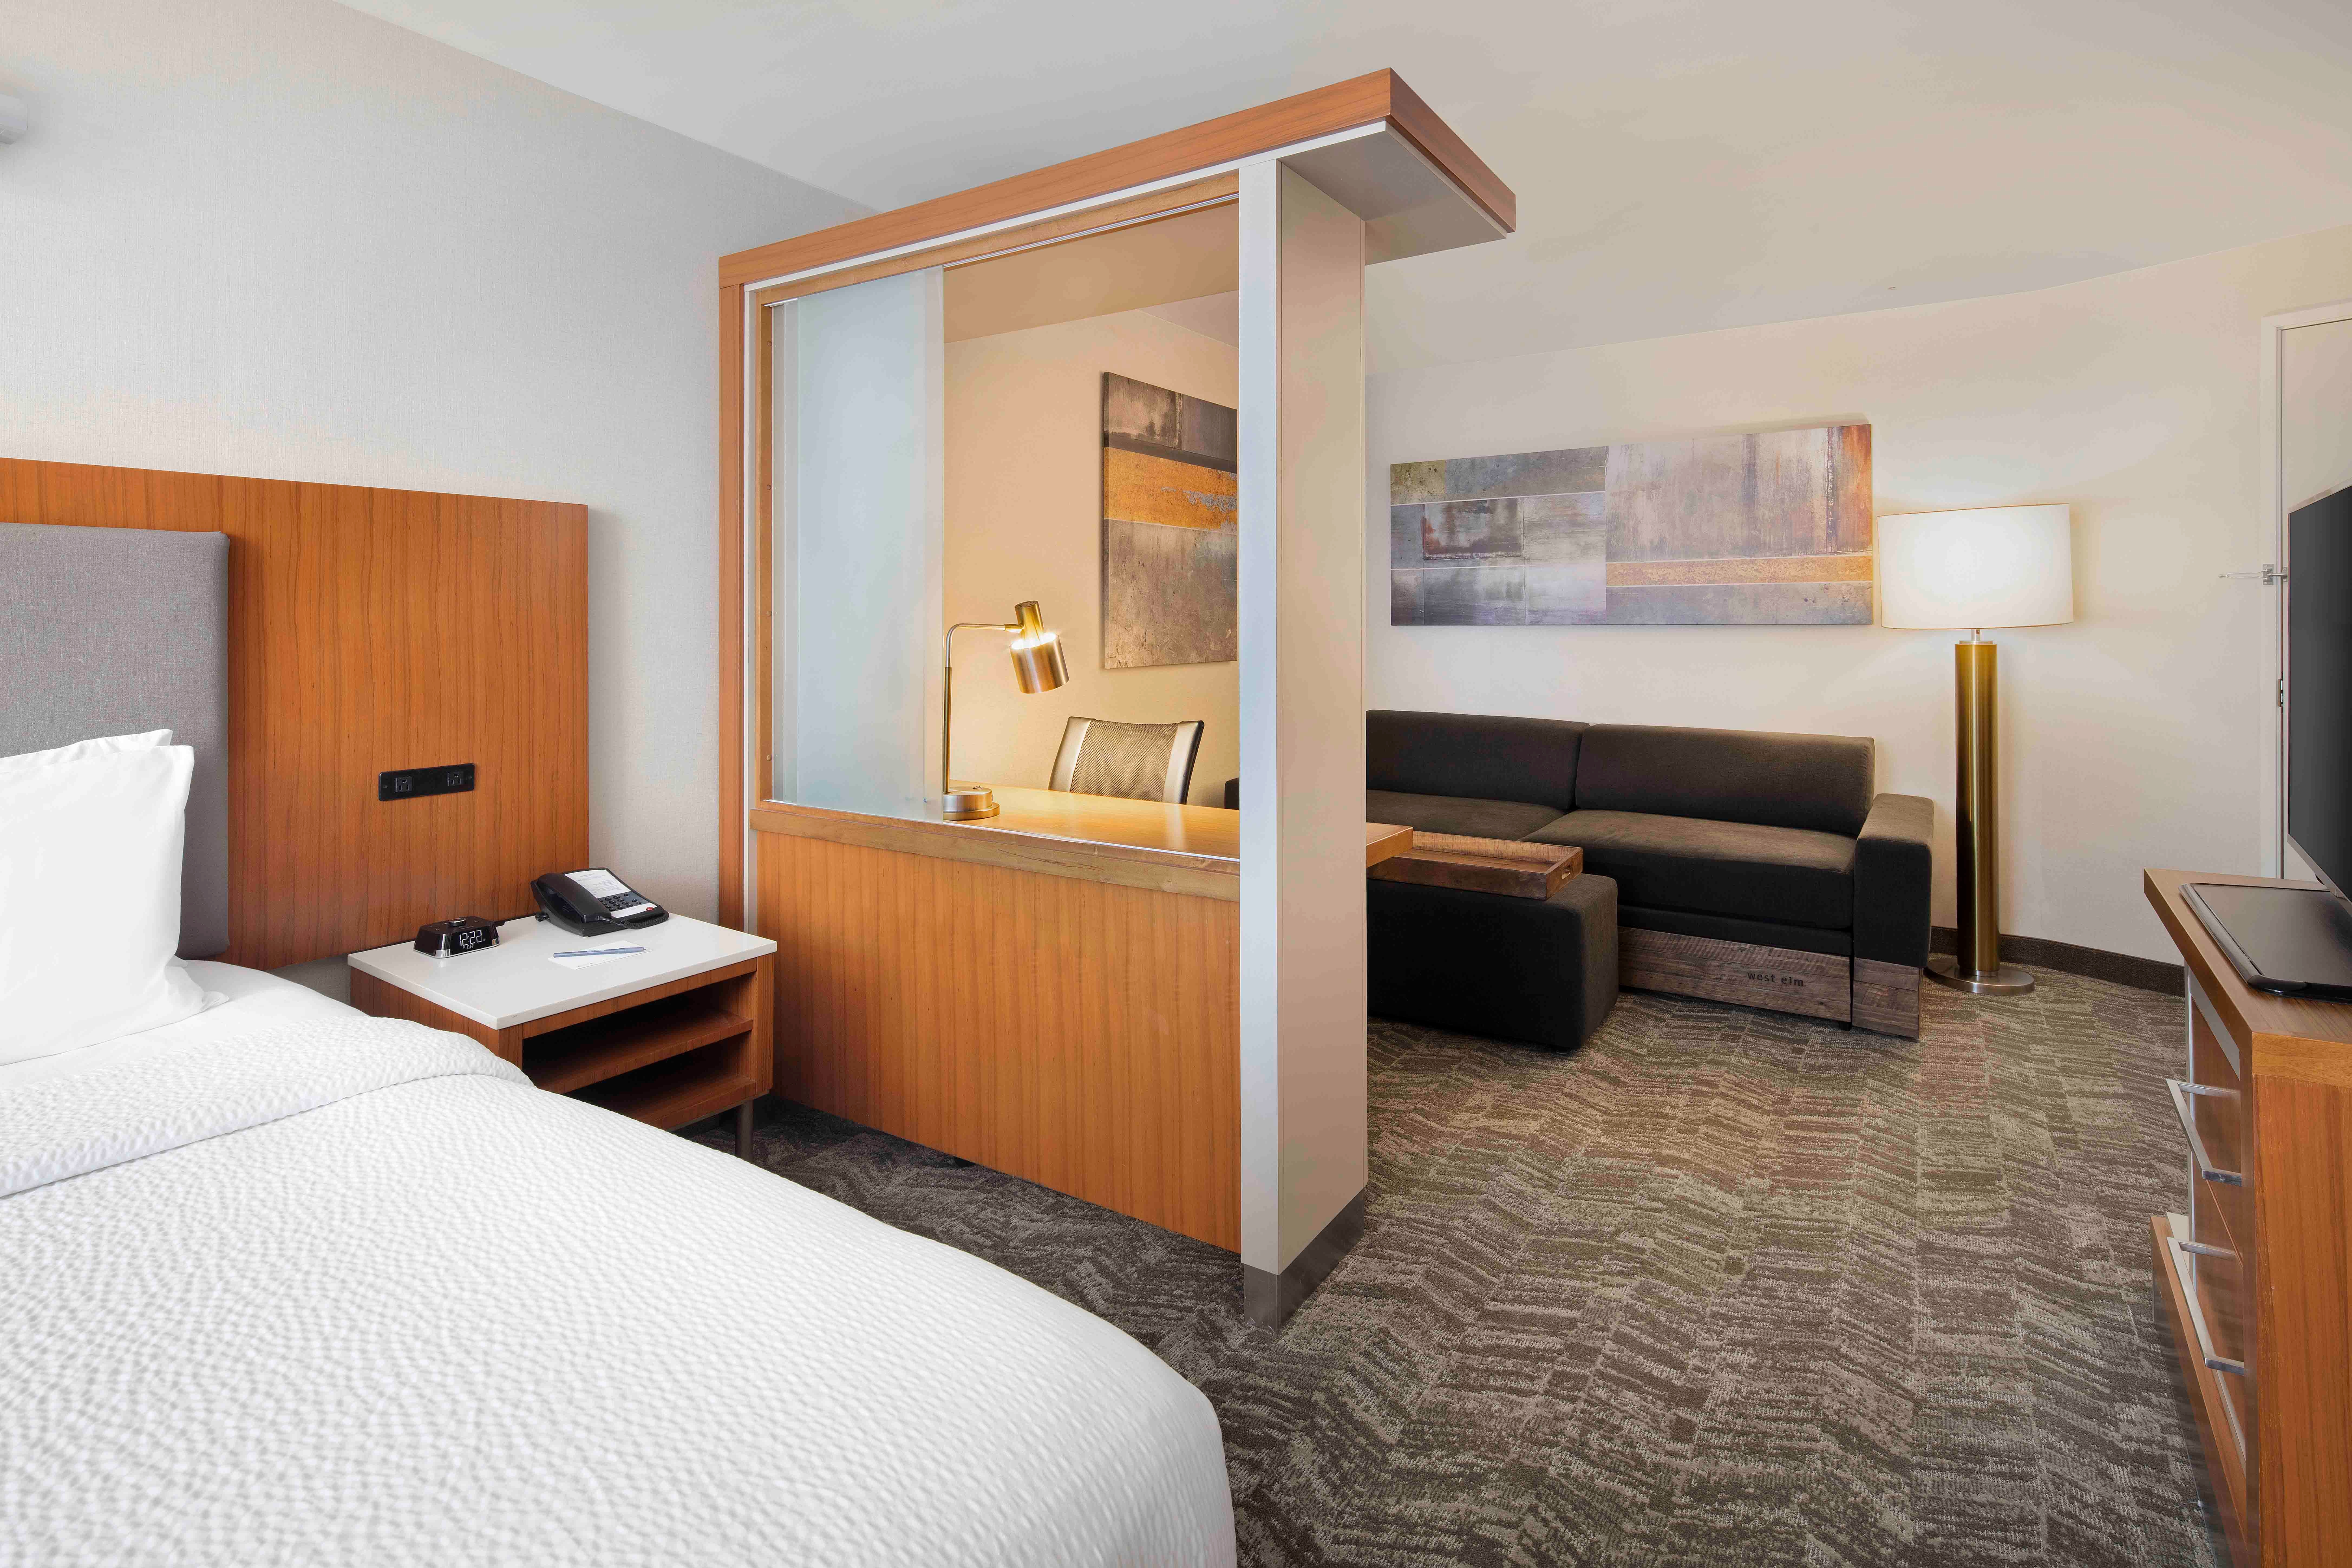 SpringHill Suites by Marriott Indianapolis Downtown image 2